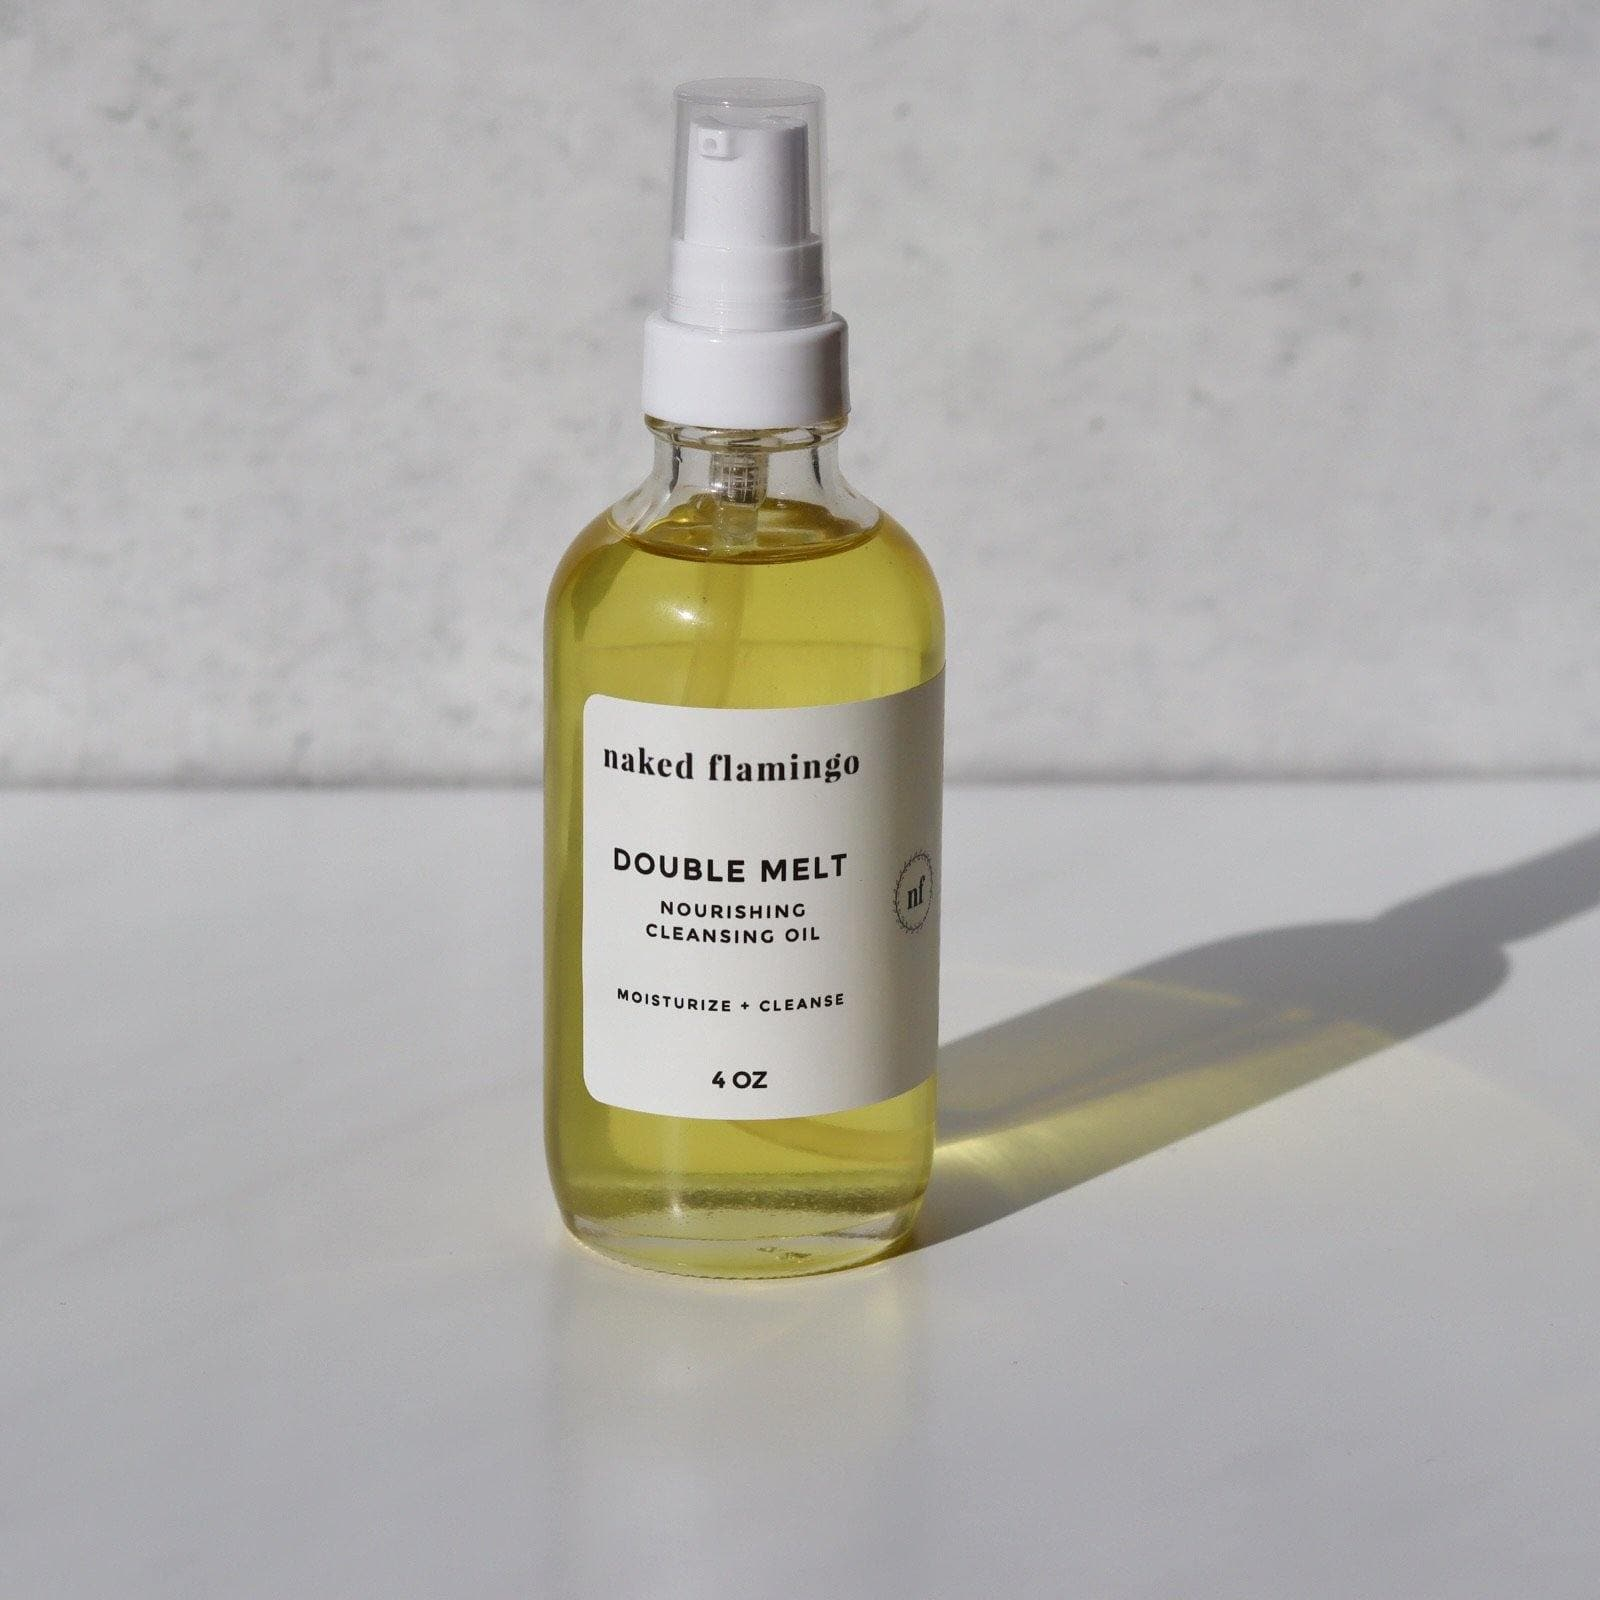 Double Melt Cleansing Oil - Naked Flamingo